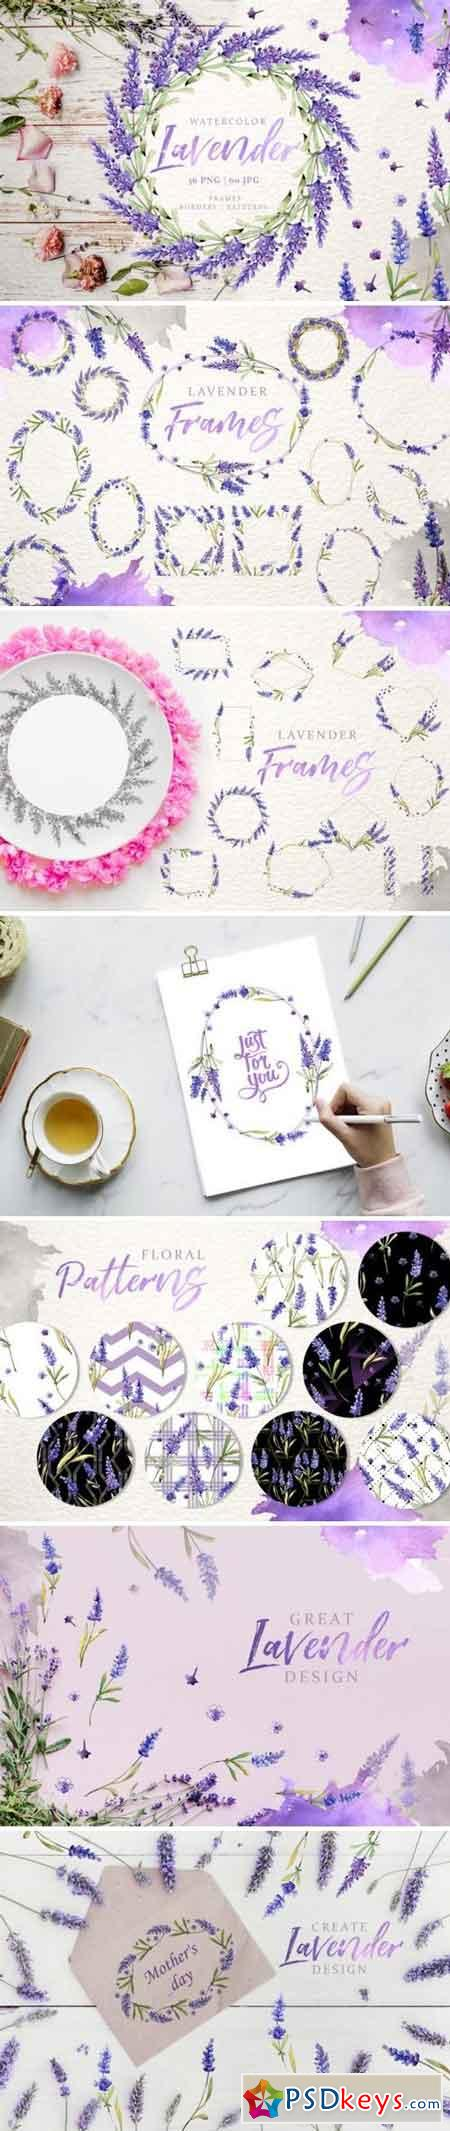 Lavender Watercolor png 3356504